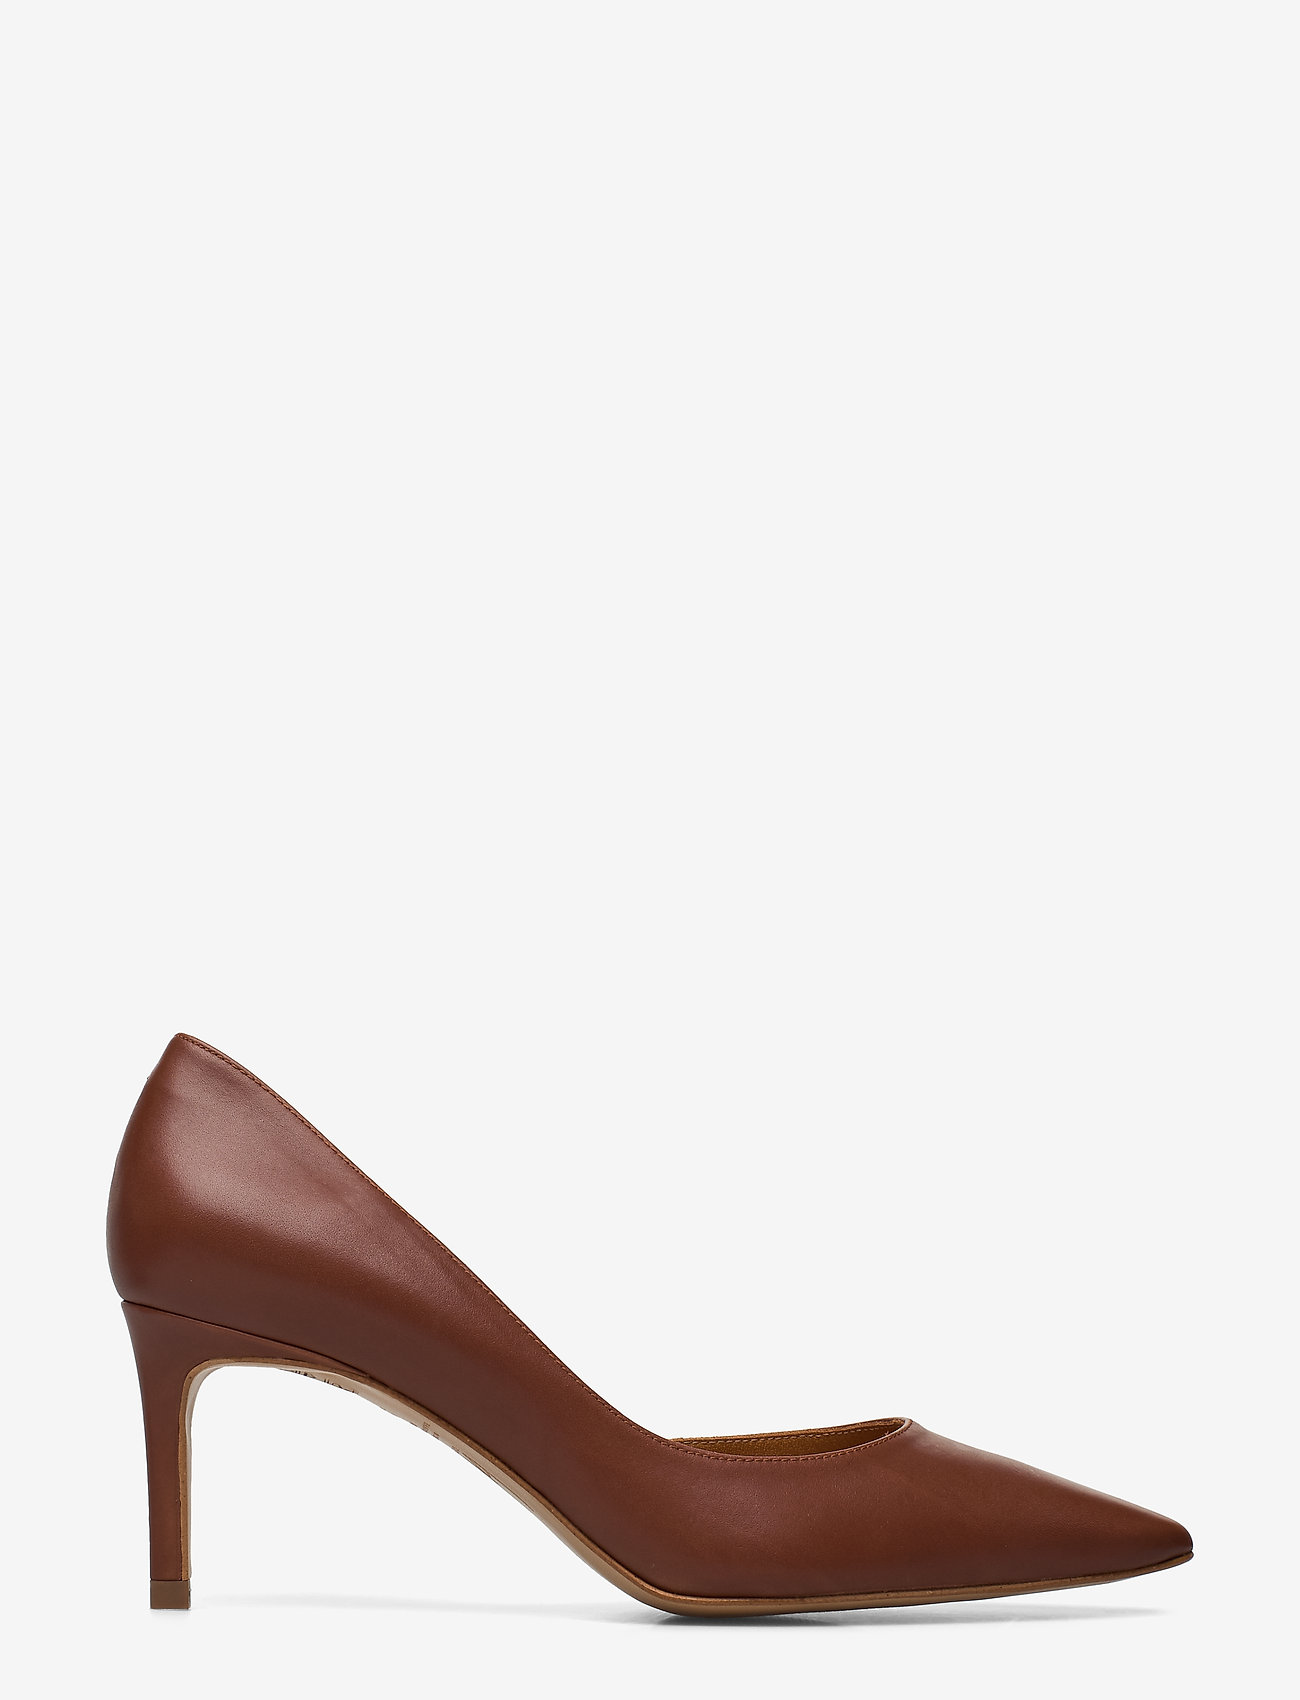 Billi Bi - Pumps 4581 - klassiske pumps - cognac cuero calf 85